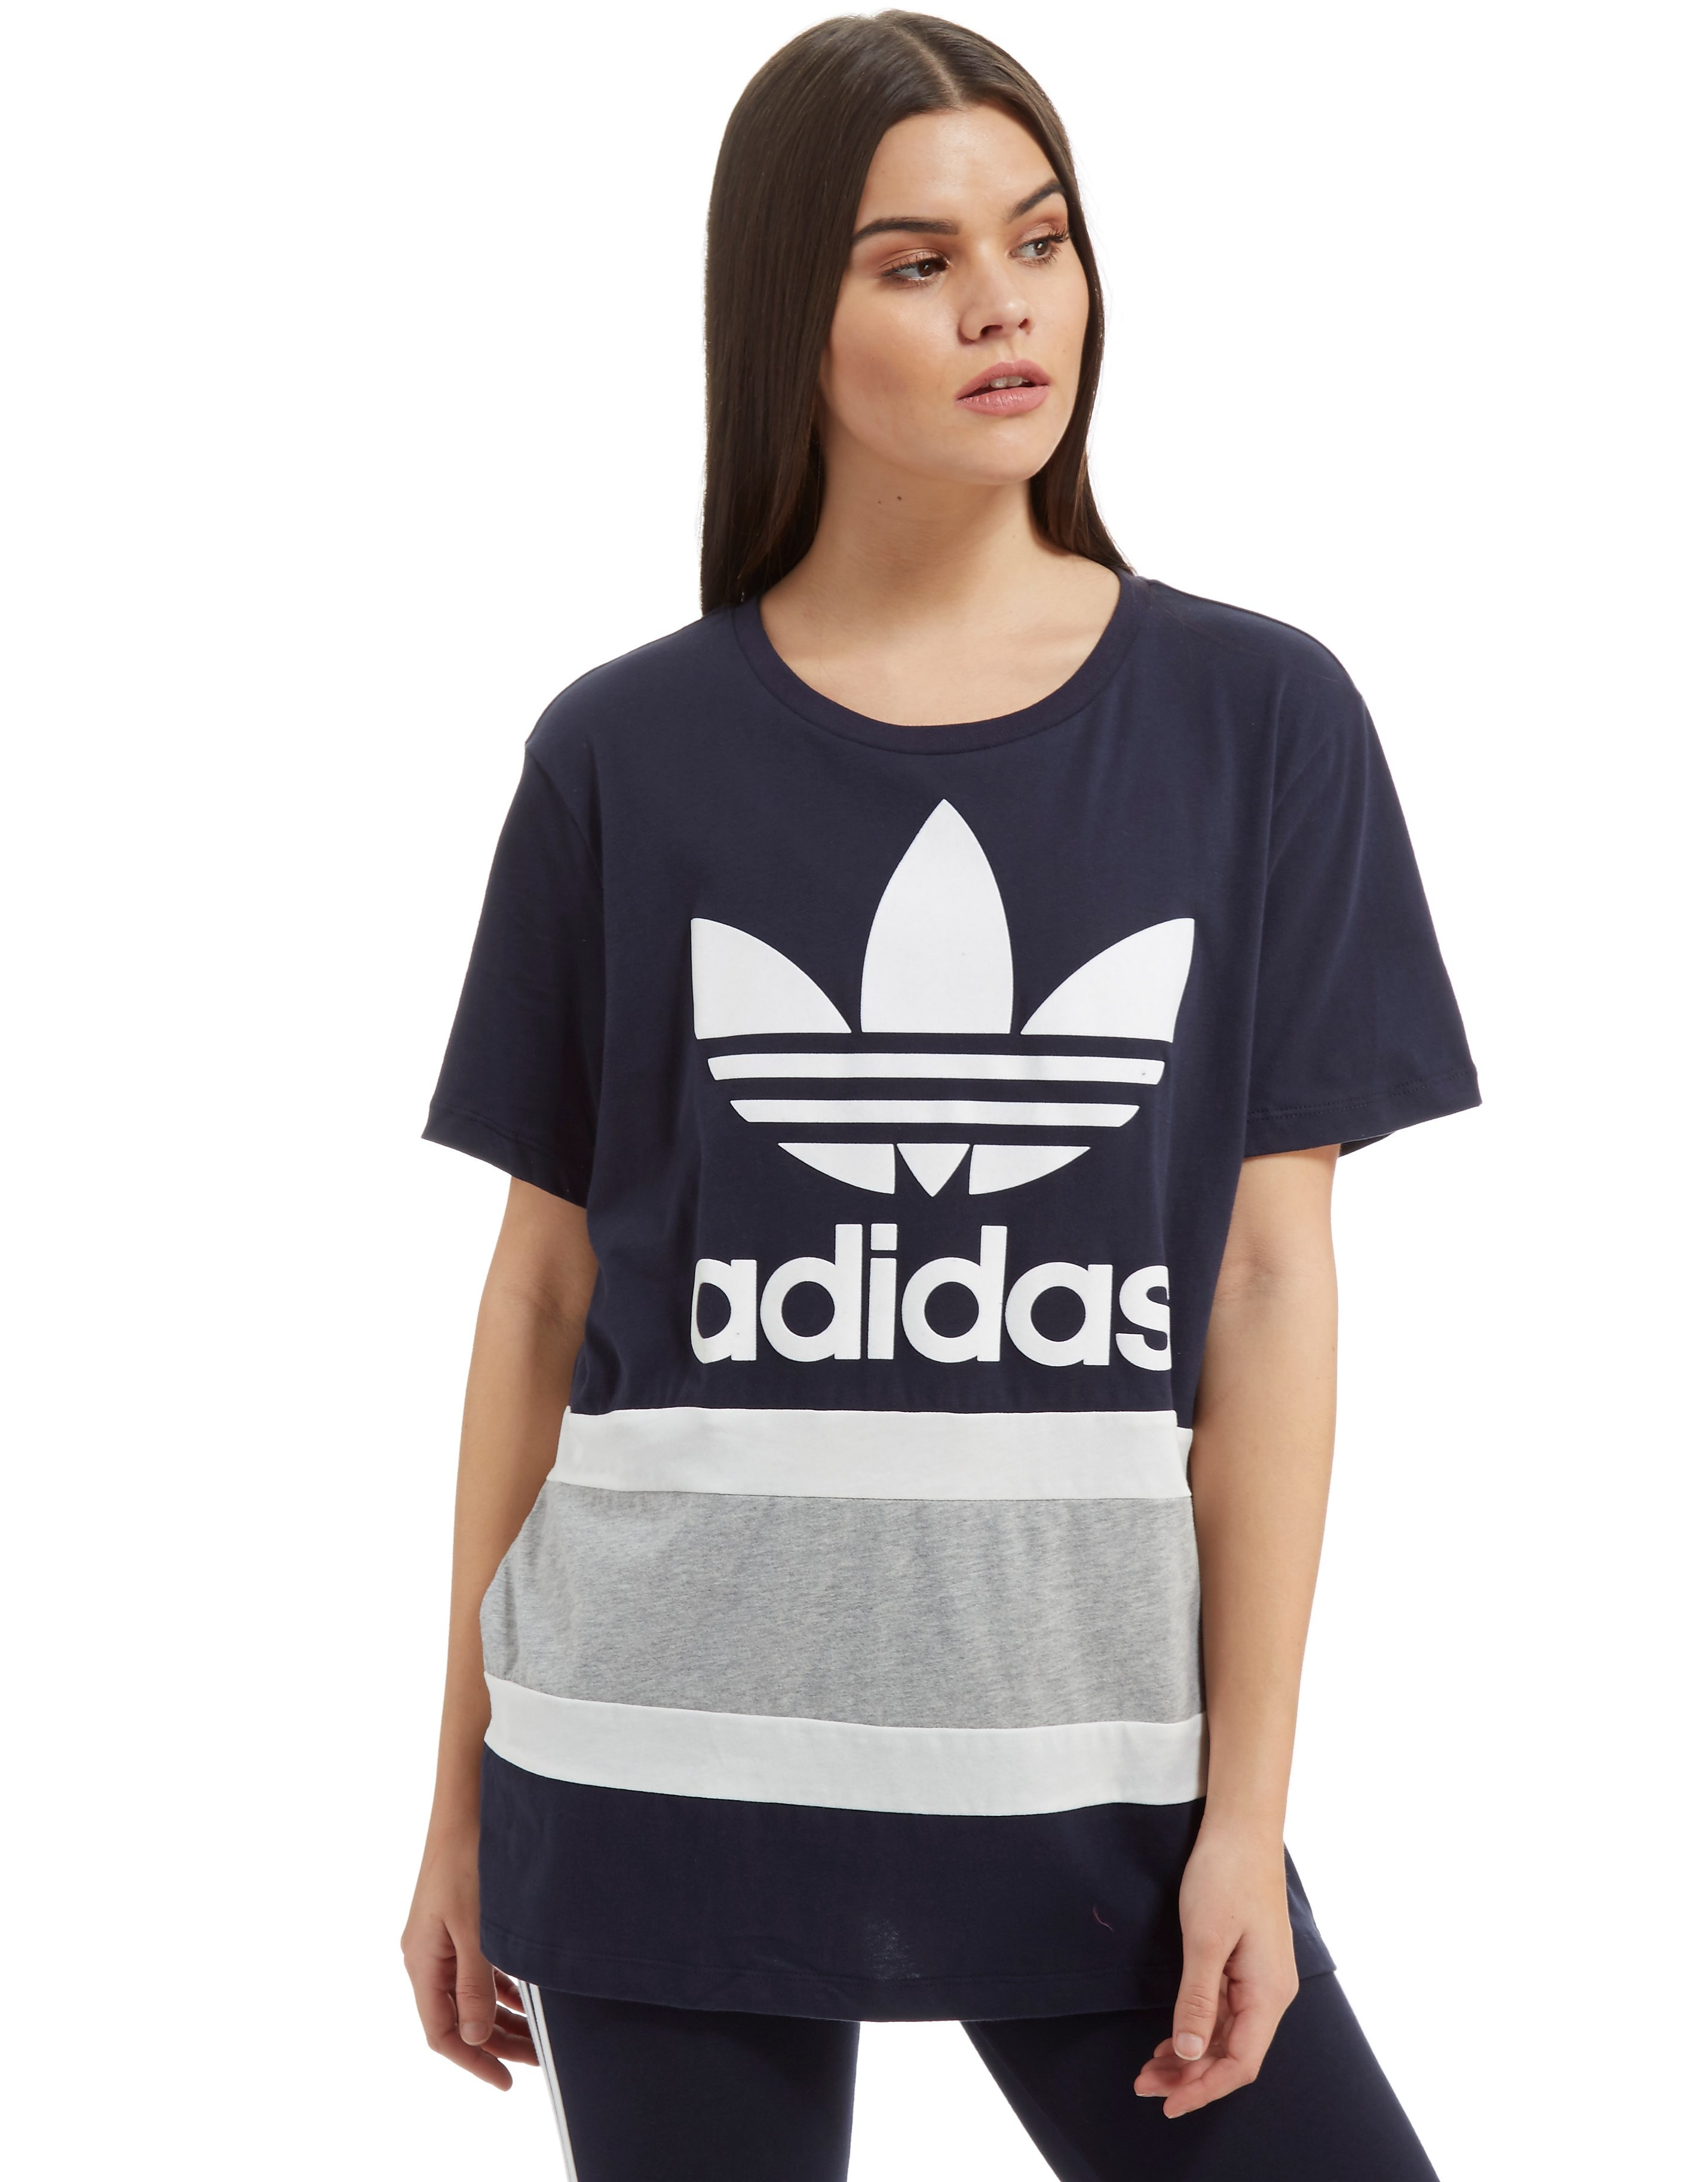 adidas Originals Panel Trefoil T-Shirt